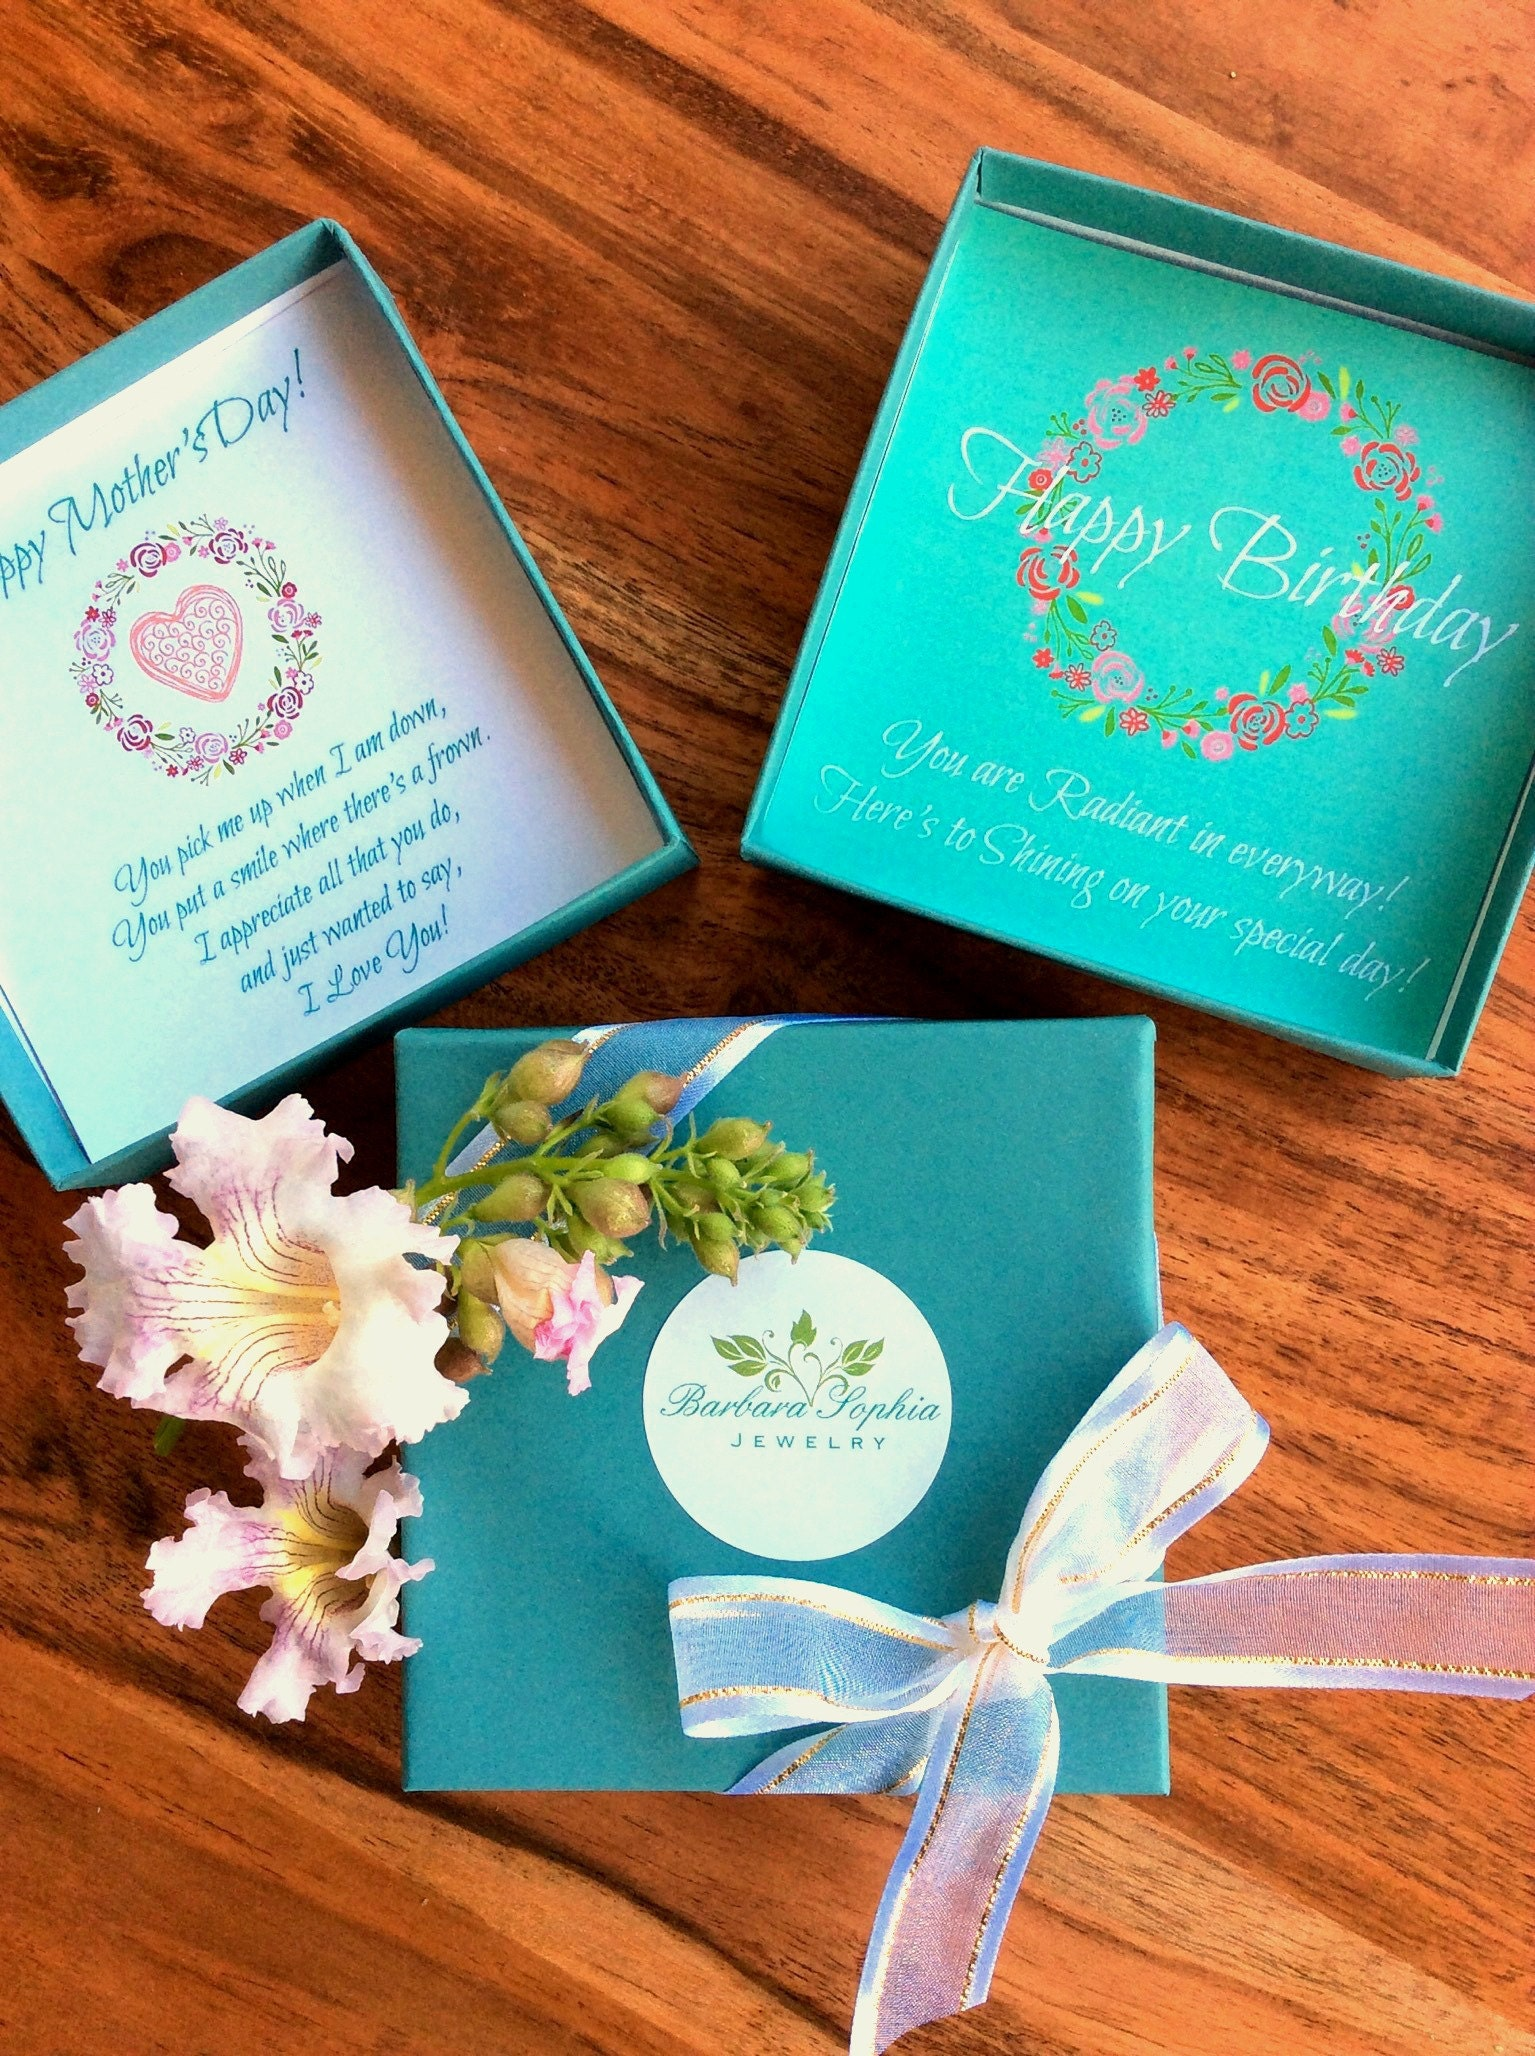 Check out the differ greeting card options for your gifts!